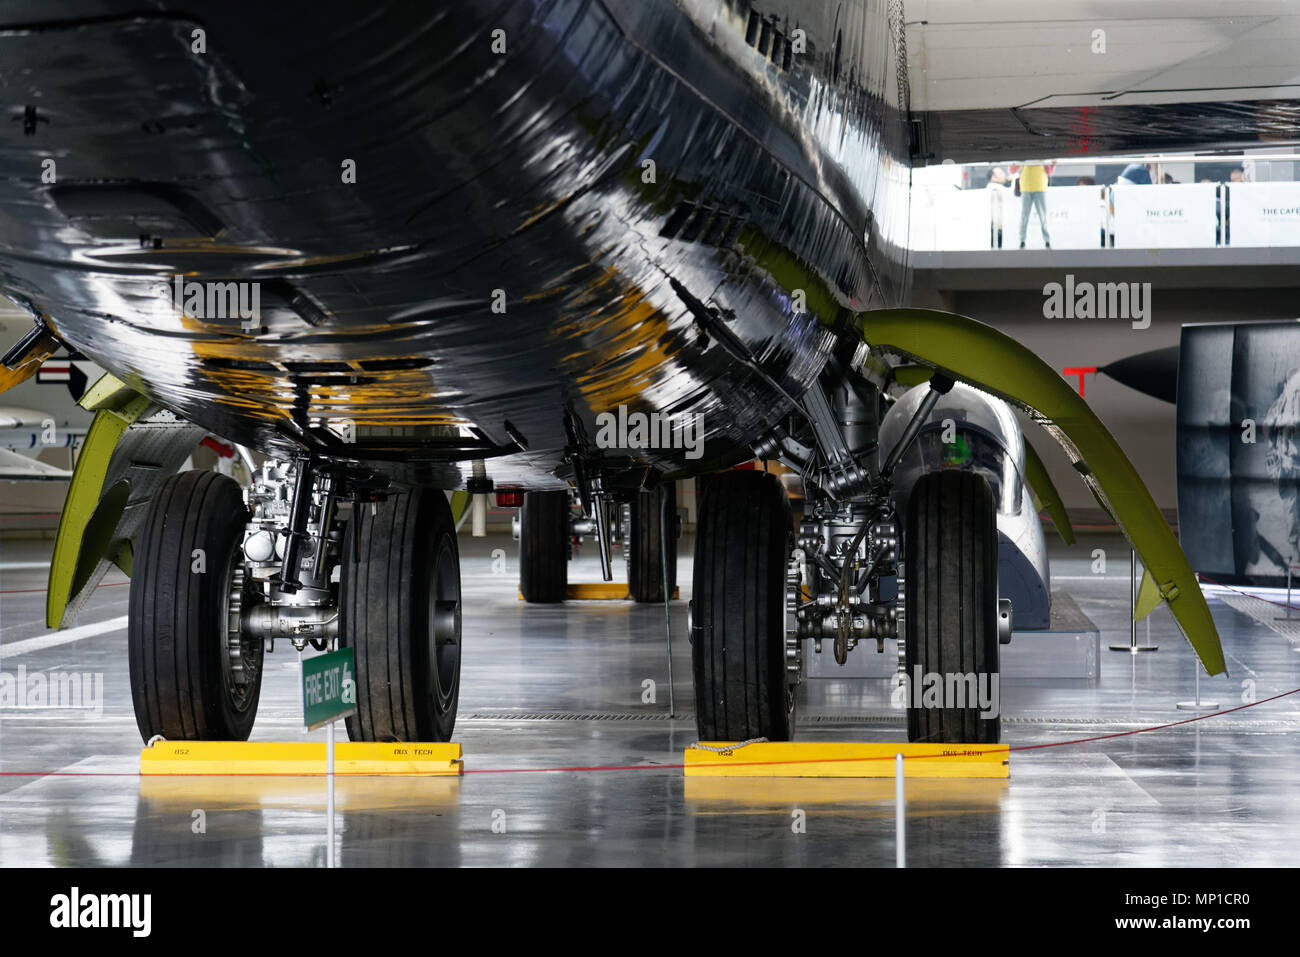 The undercarriage of the Boeing B-52 at Duxford Air Museum, Cambridgeshire, England - Stock Image